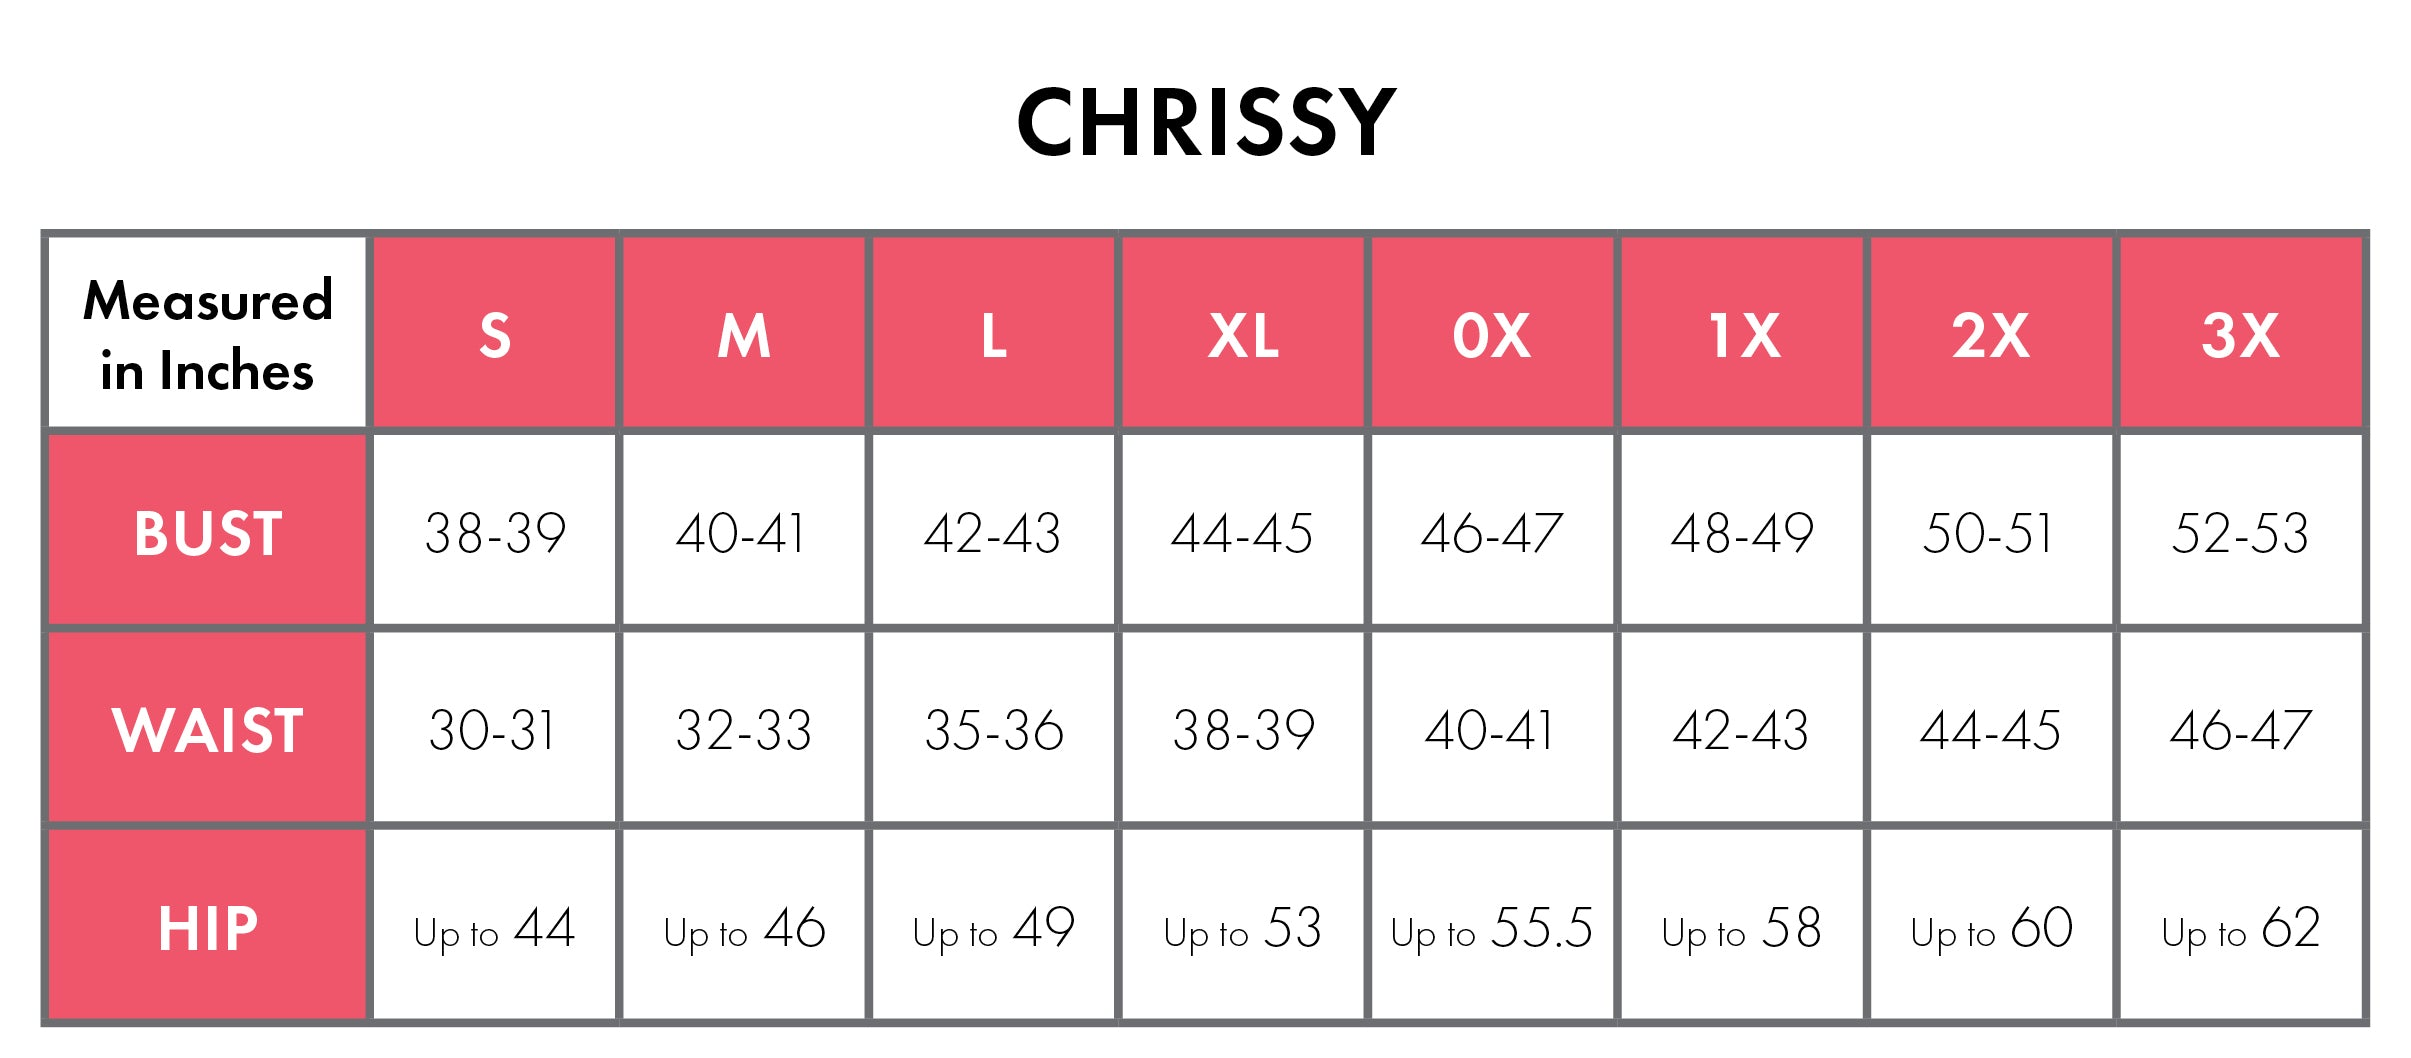 Size Chart For Chrissy 100% Cotton